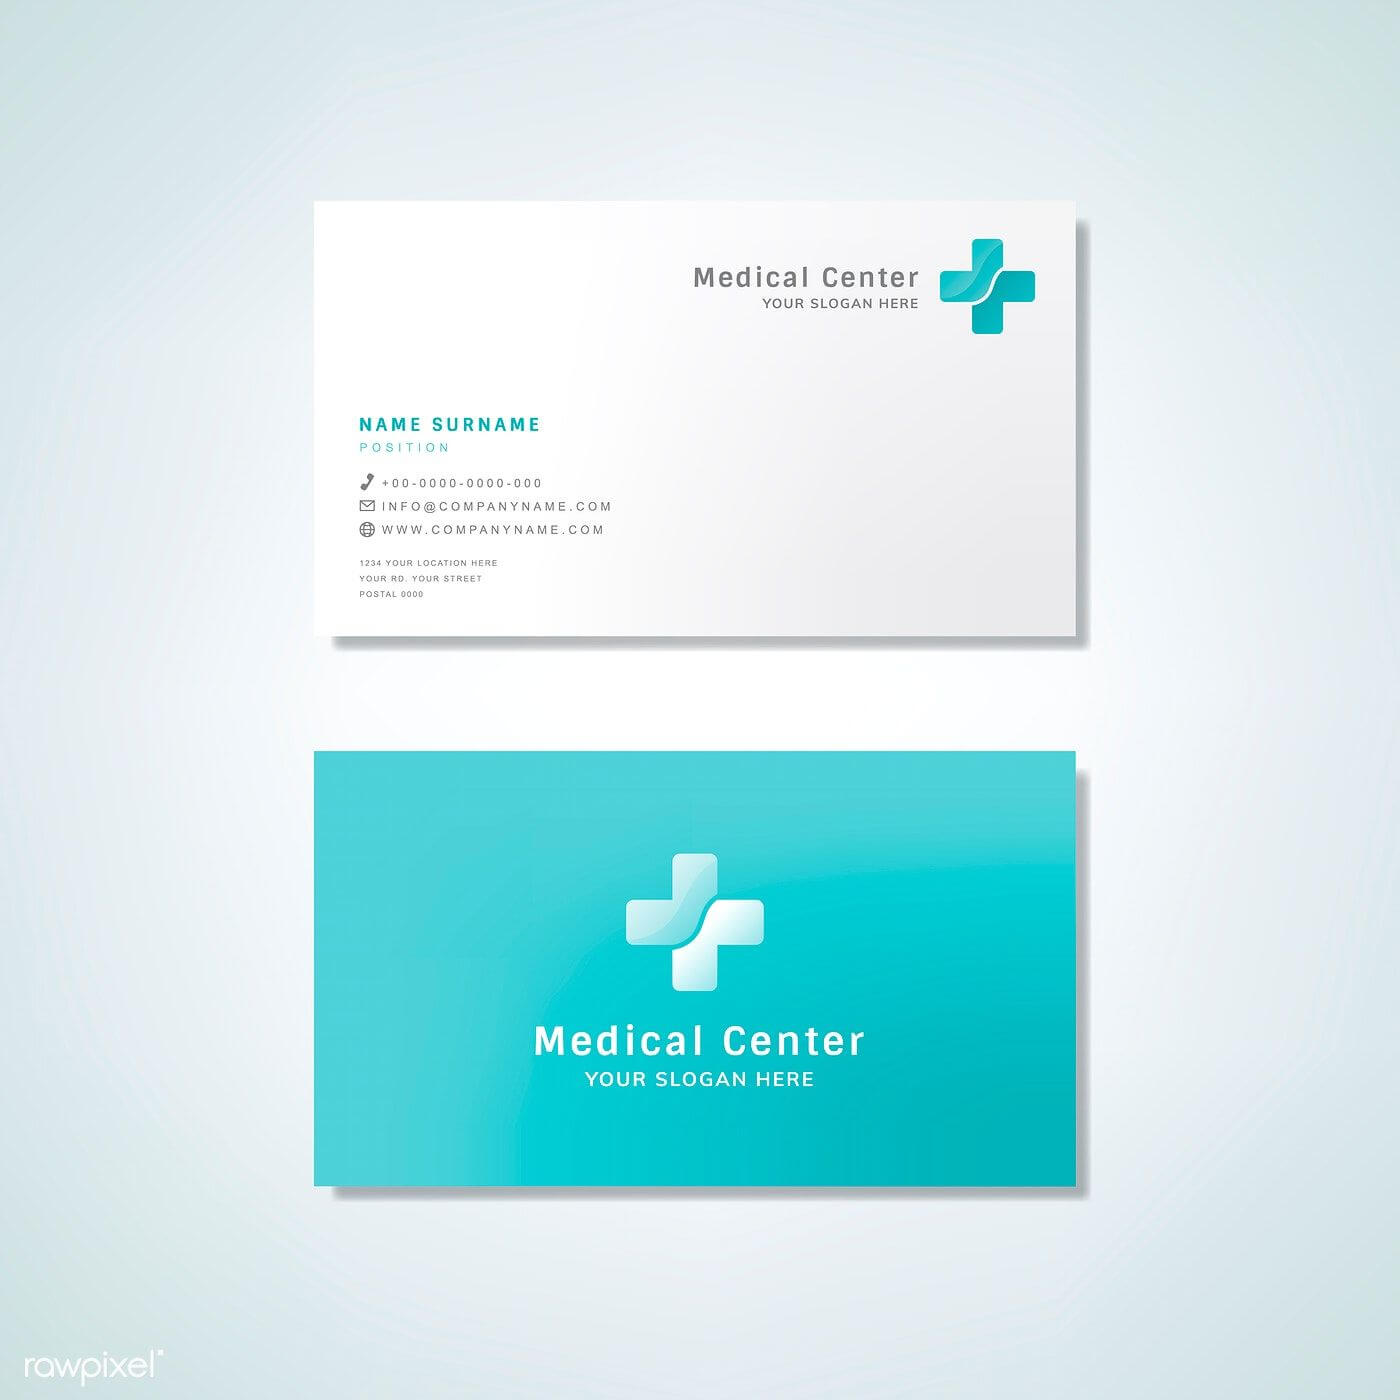 Medical Professional Business Card Design Mockup | Free Regarding Medical Business Cards Templates Free